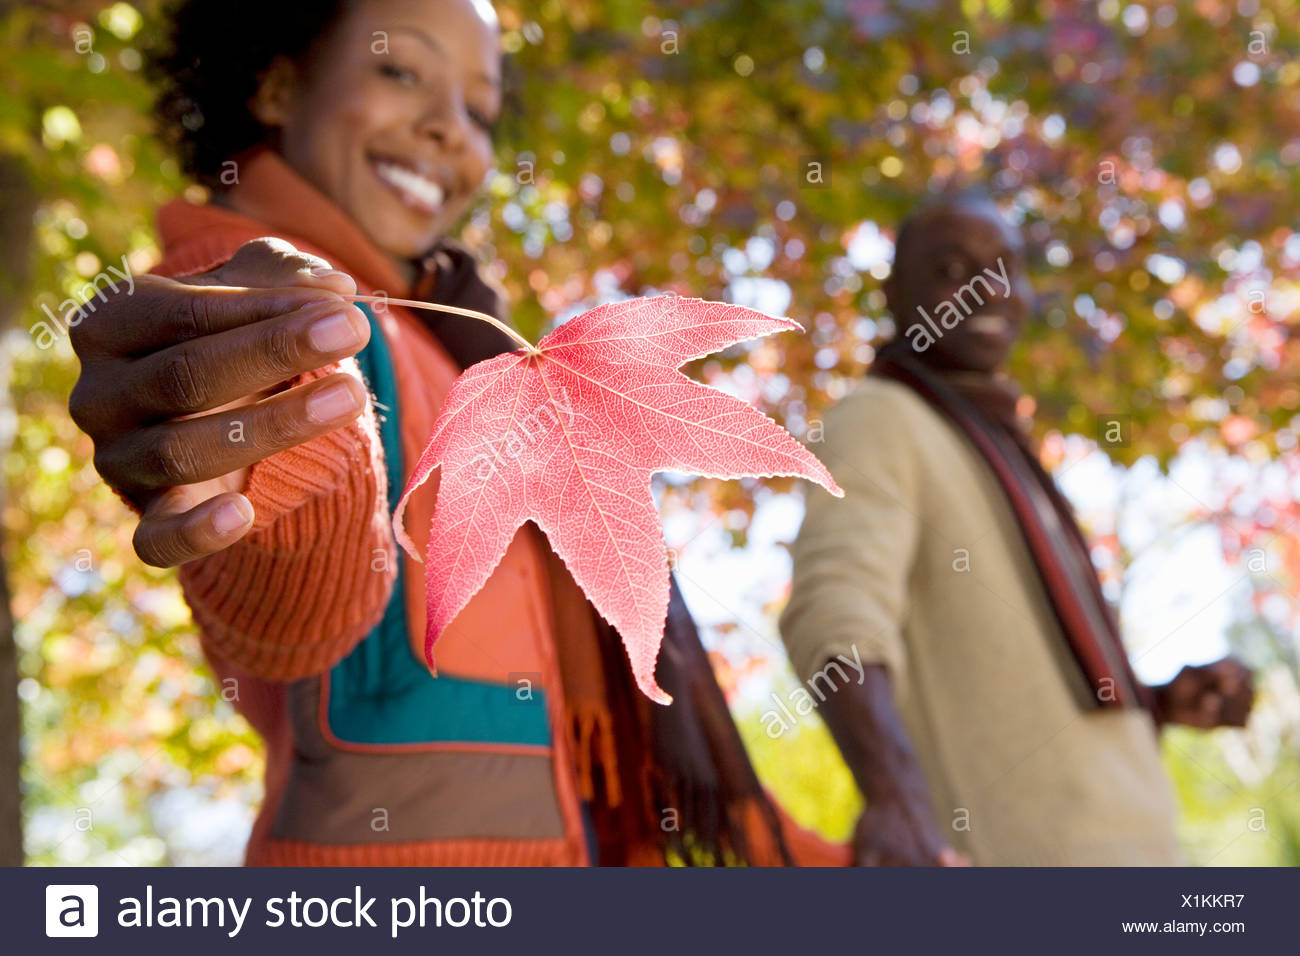 Couple walking hand in hand in autumn park focus on woman holding red maple leaf smiling side view portrait - Stock Image